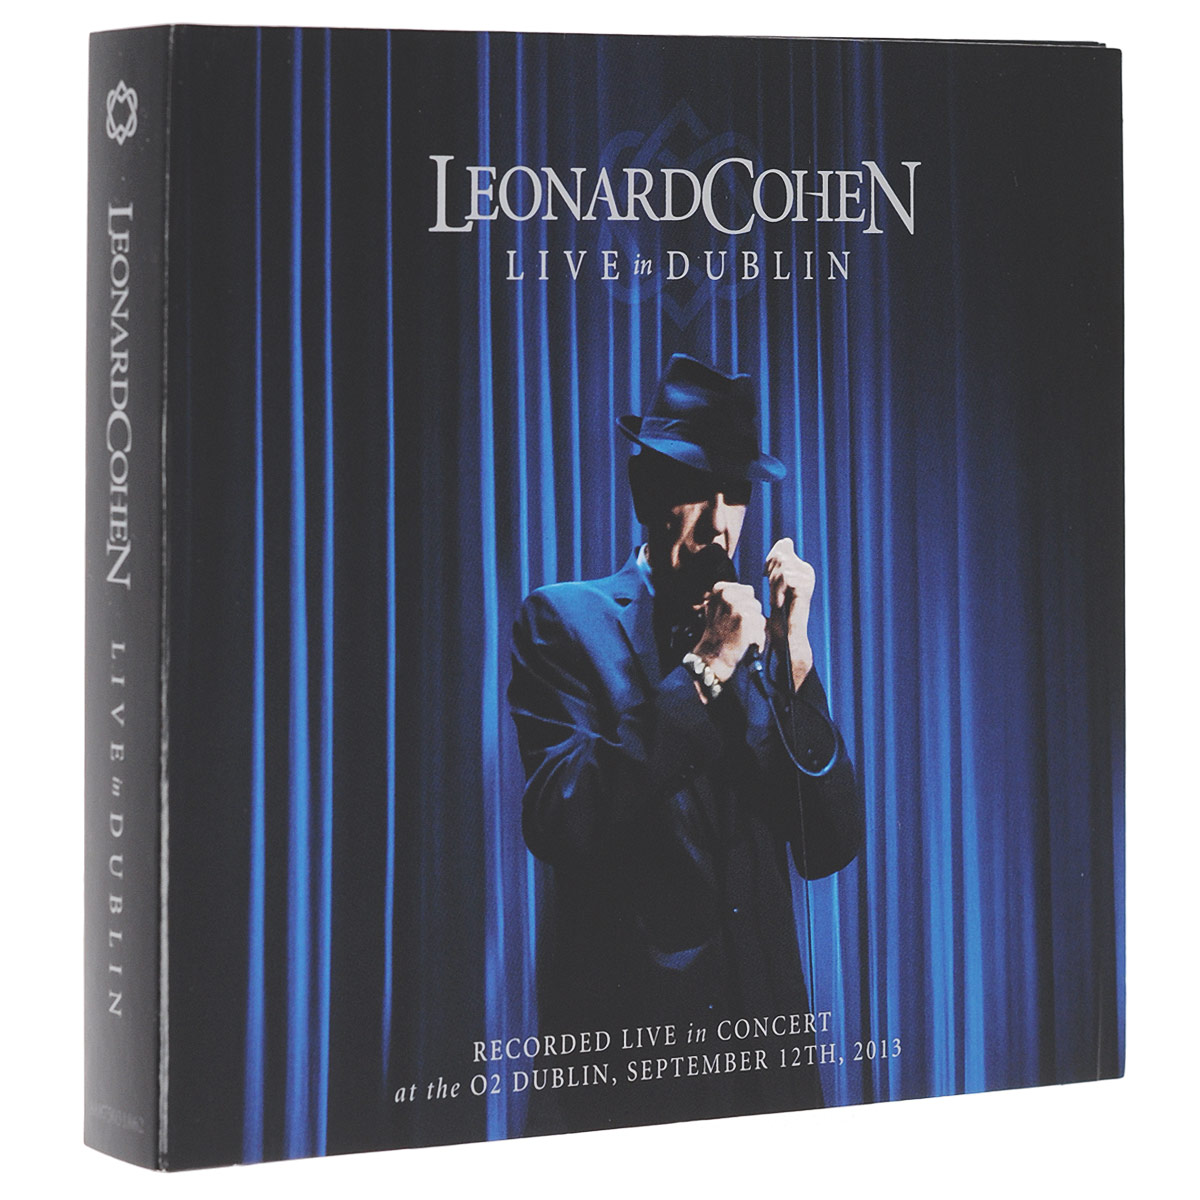 Леонард Коэн Leonard Cohen. Live In Dublin (3 CD) 50pcs m2 male 3mm x female 3 30 mm brass screws security surveillance cameras pillars knurled standoff space